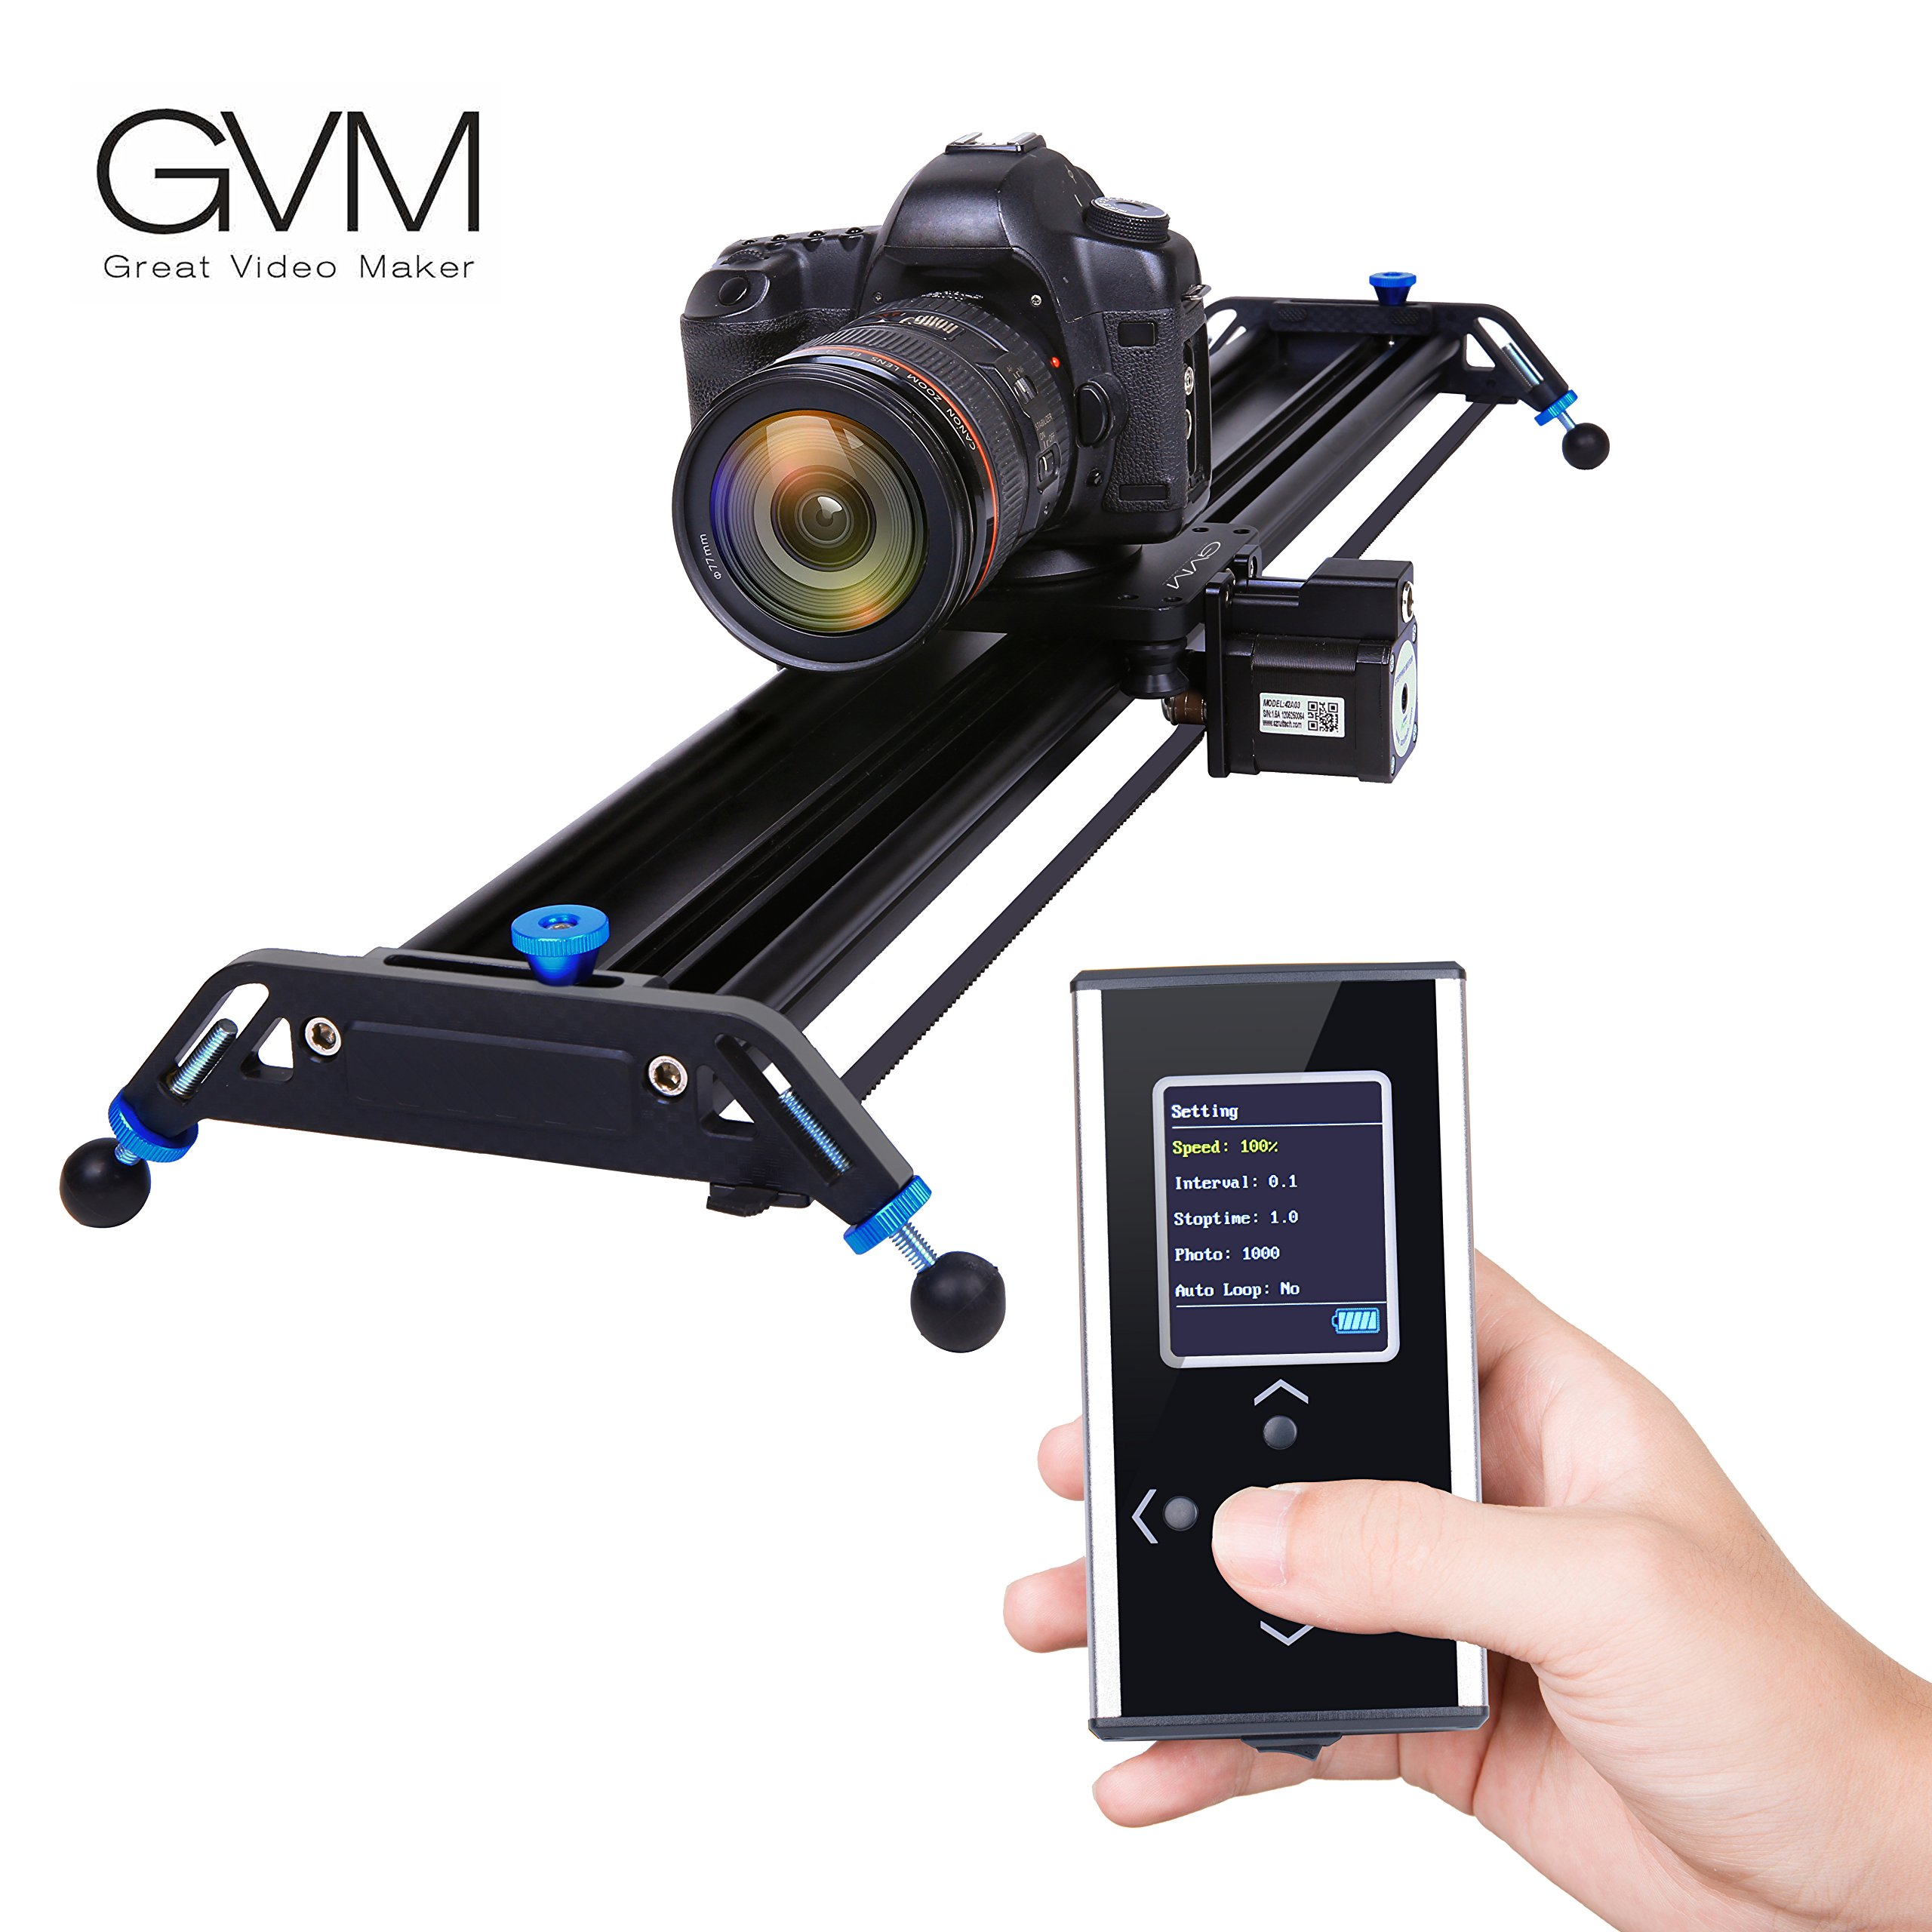 Motorized Camera Slider Dolly Track GVM 31.8 inch Automatic Cycle Time Lapse Tracking 120 Degree wide-angle Shooting of the Most Smooth Video Slider Track (Aluminum Alloy) by GVM